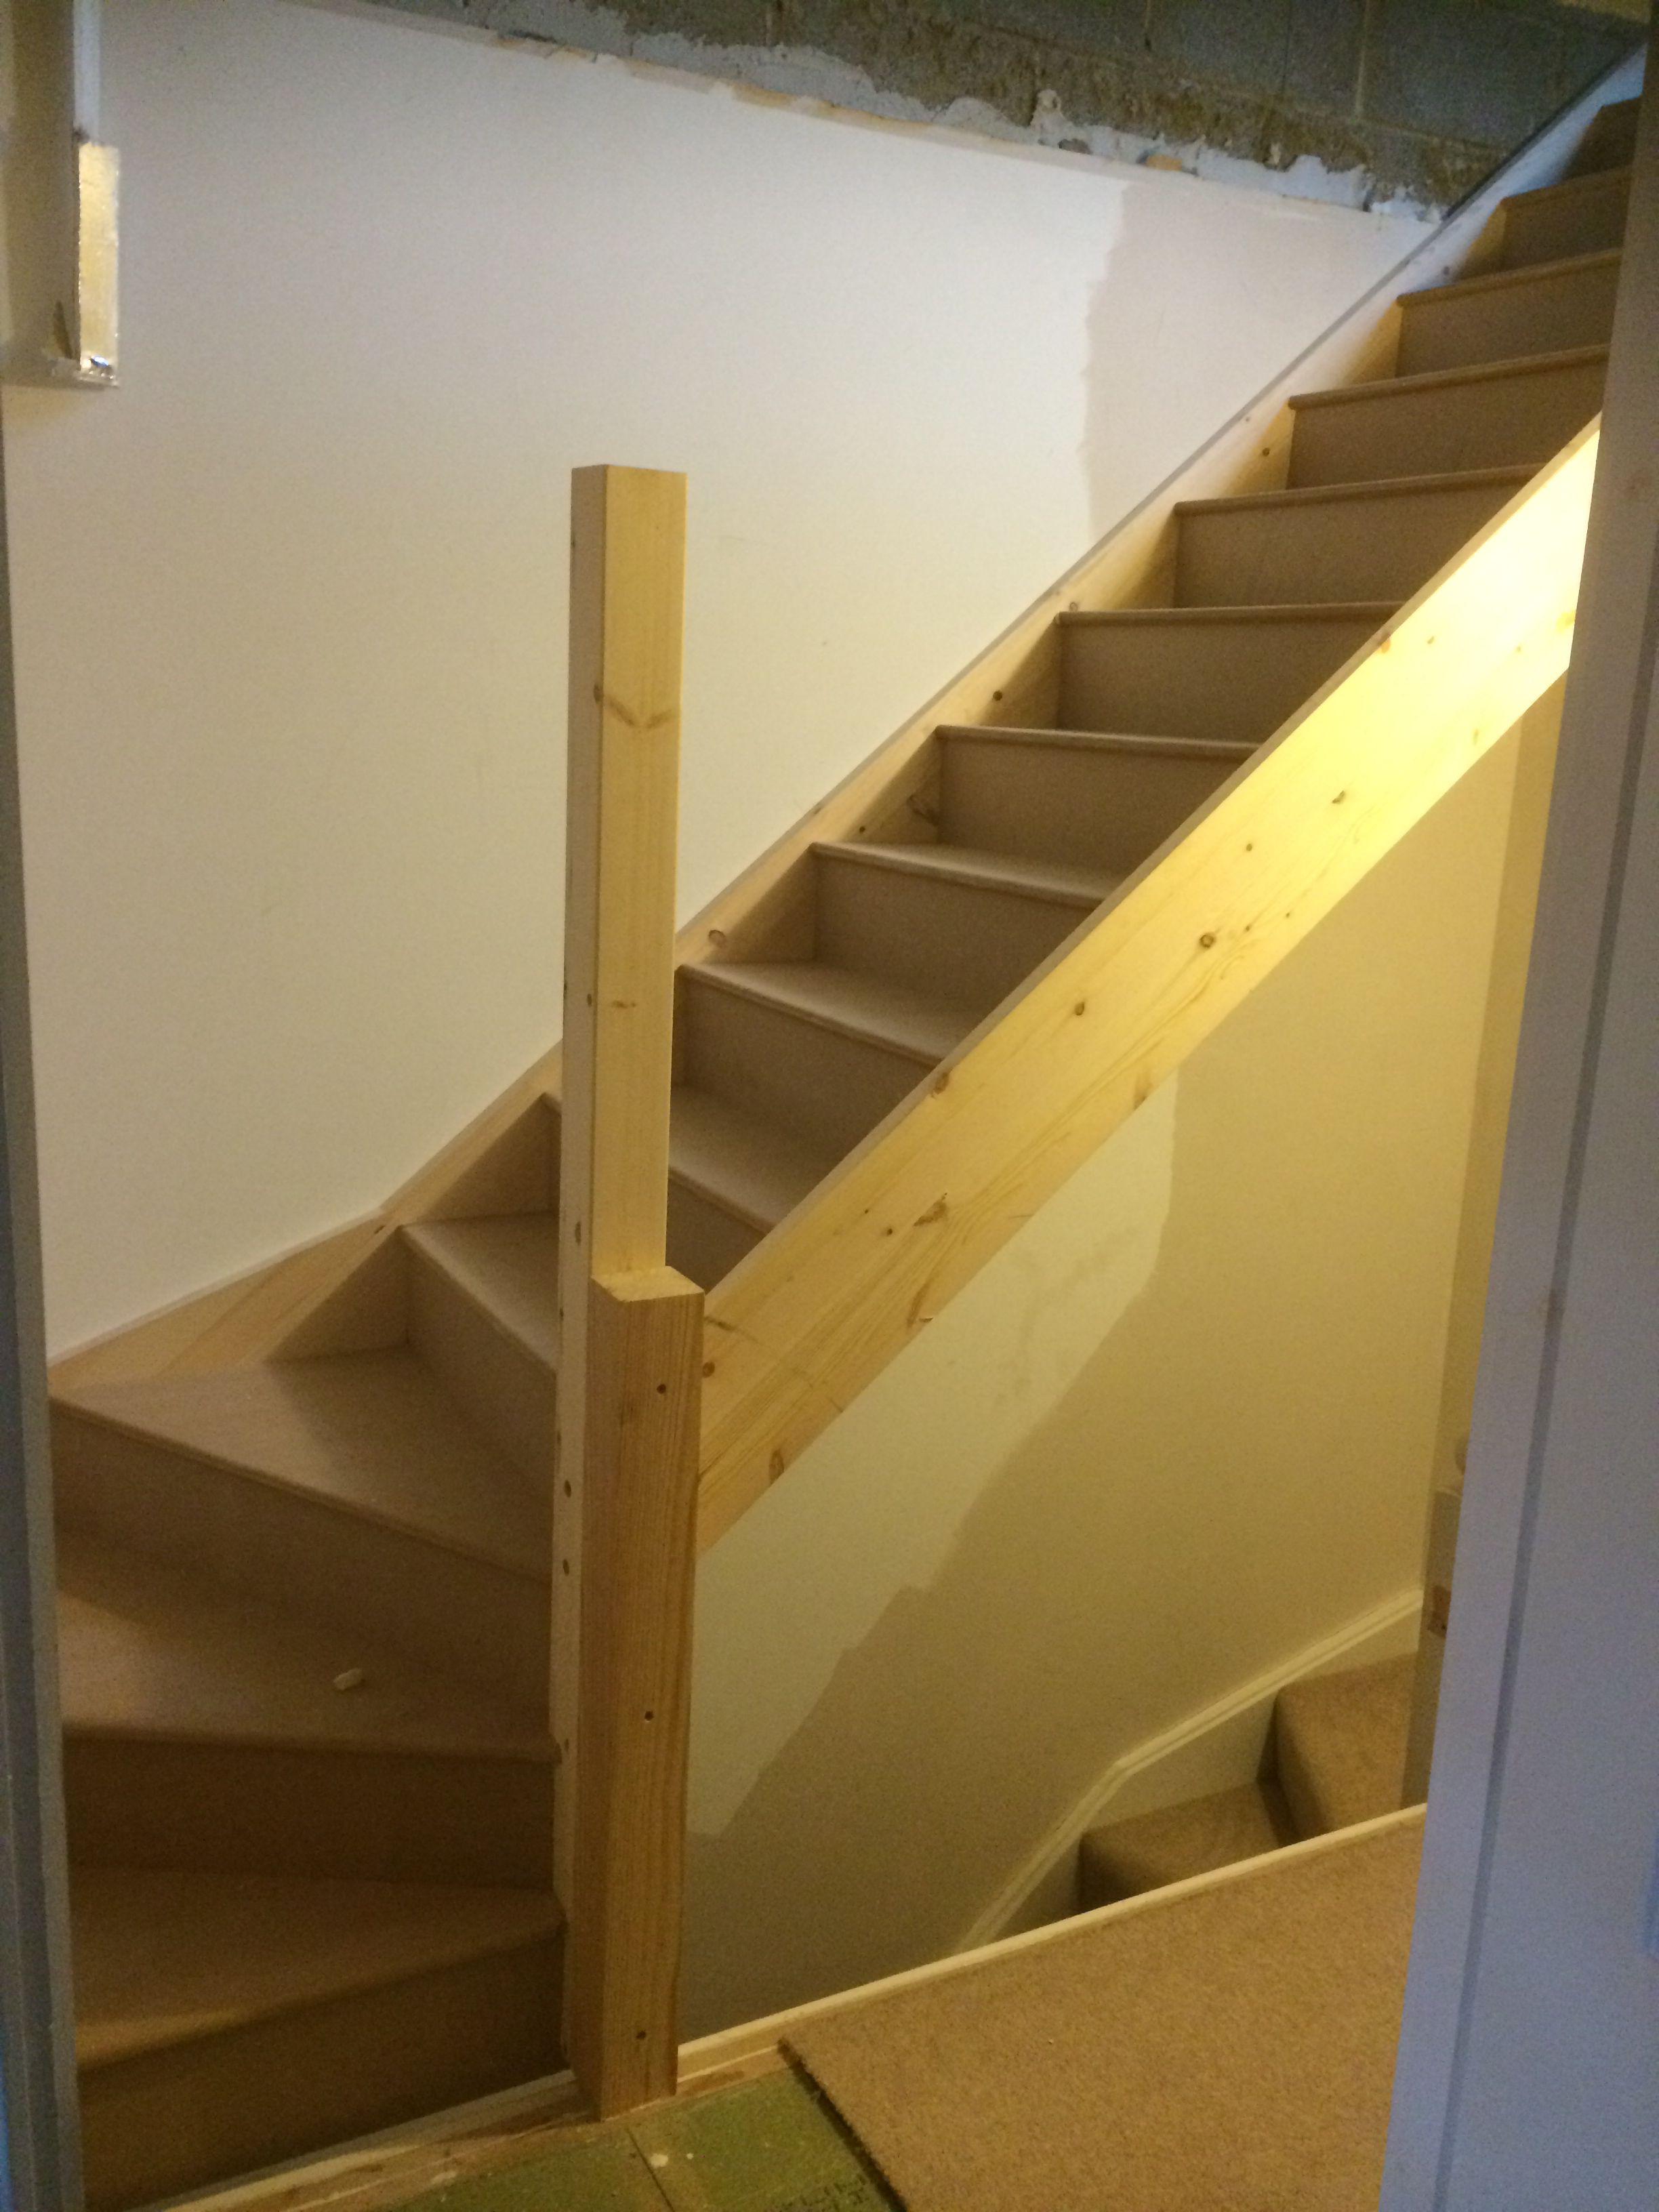 Stairs For The Loft Conversion Have Been Fitted Loft Conversion Loft Conversion Cost Loft Room